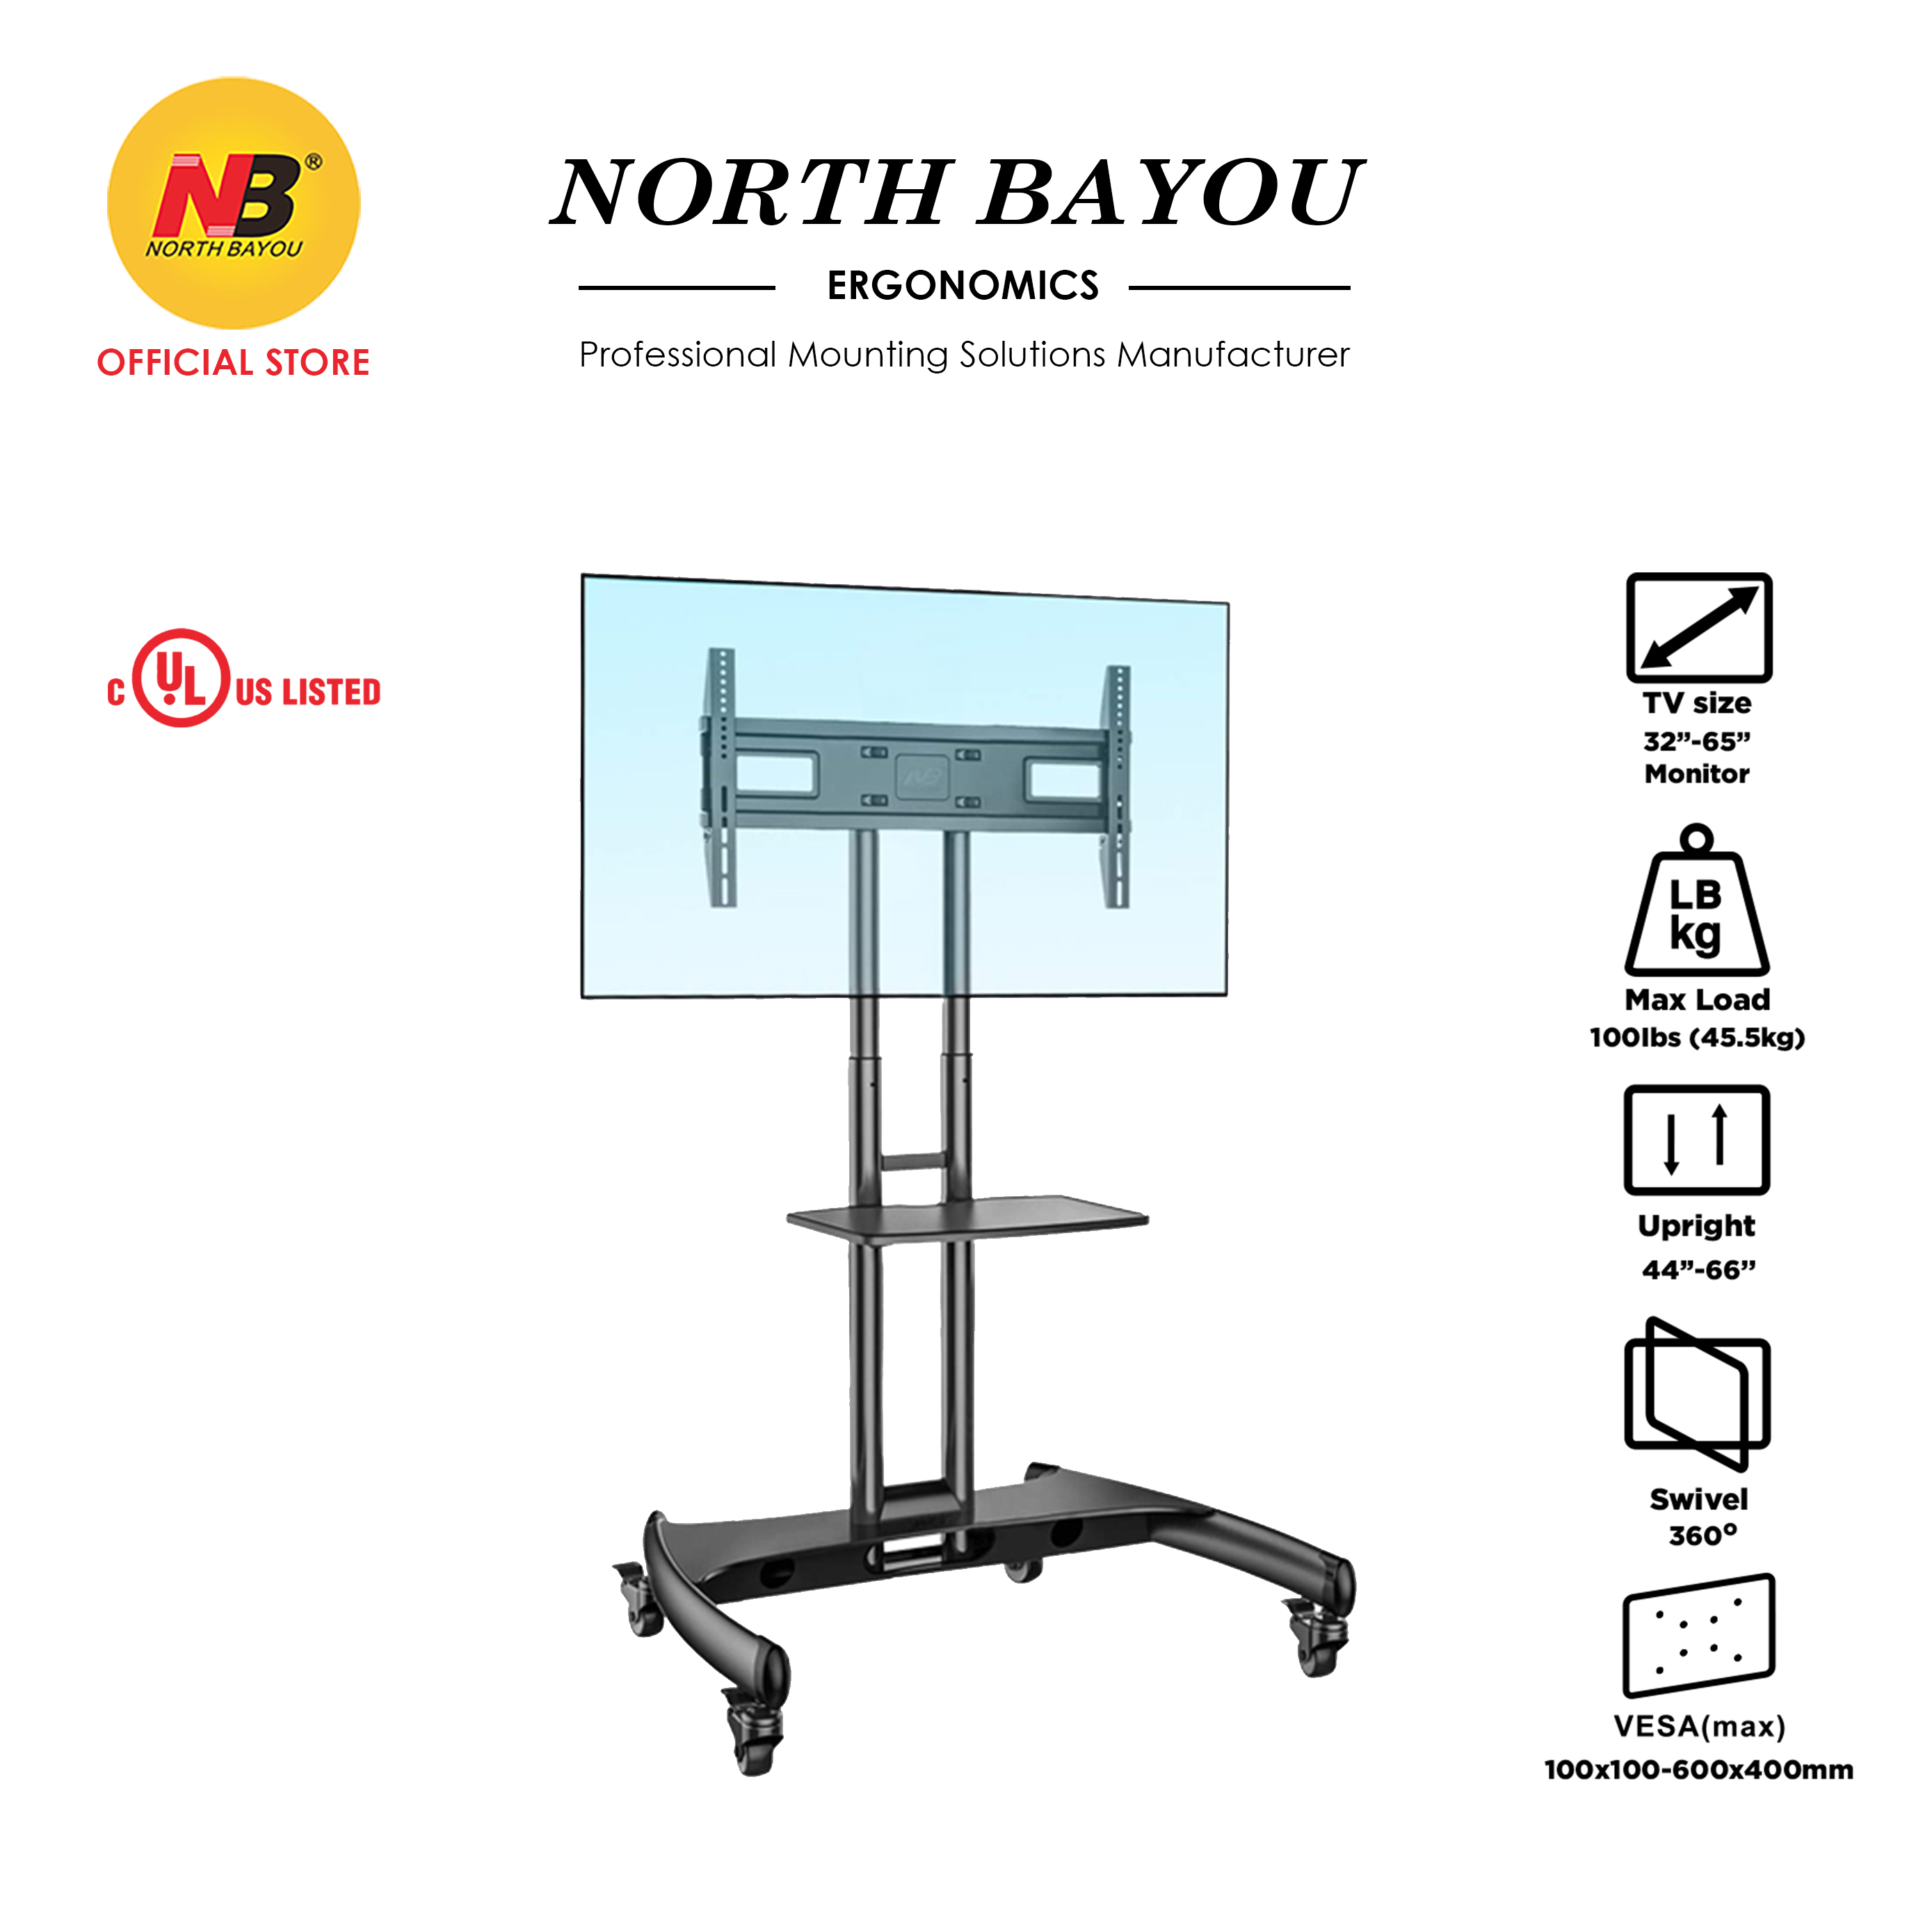 NB North Bayou Mobile TV Cart TV Stand with Wheels for 32 to 65 Inch LCD LED OLED Plasma Flat Panel Screens up to 100lbs